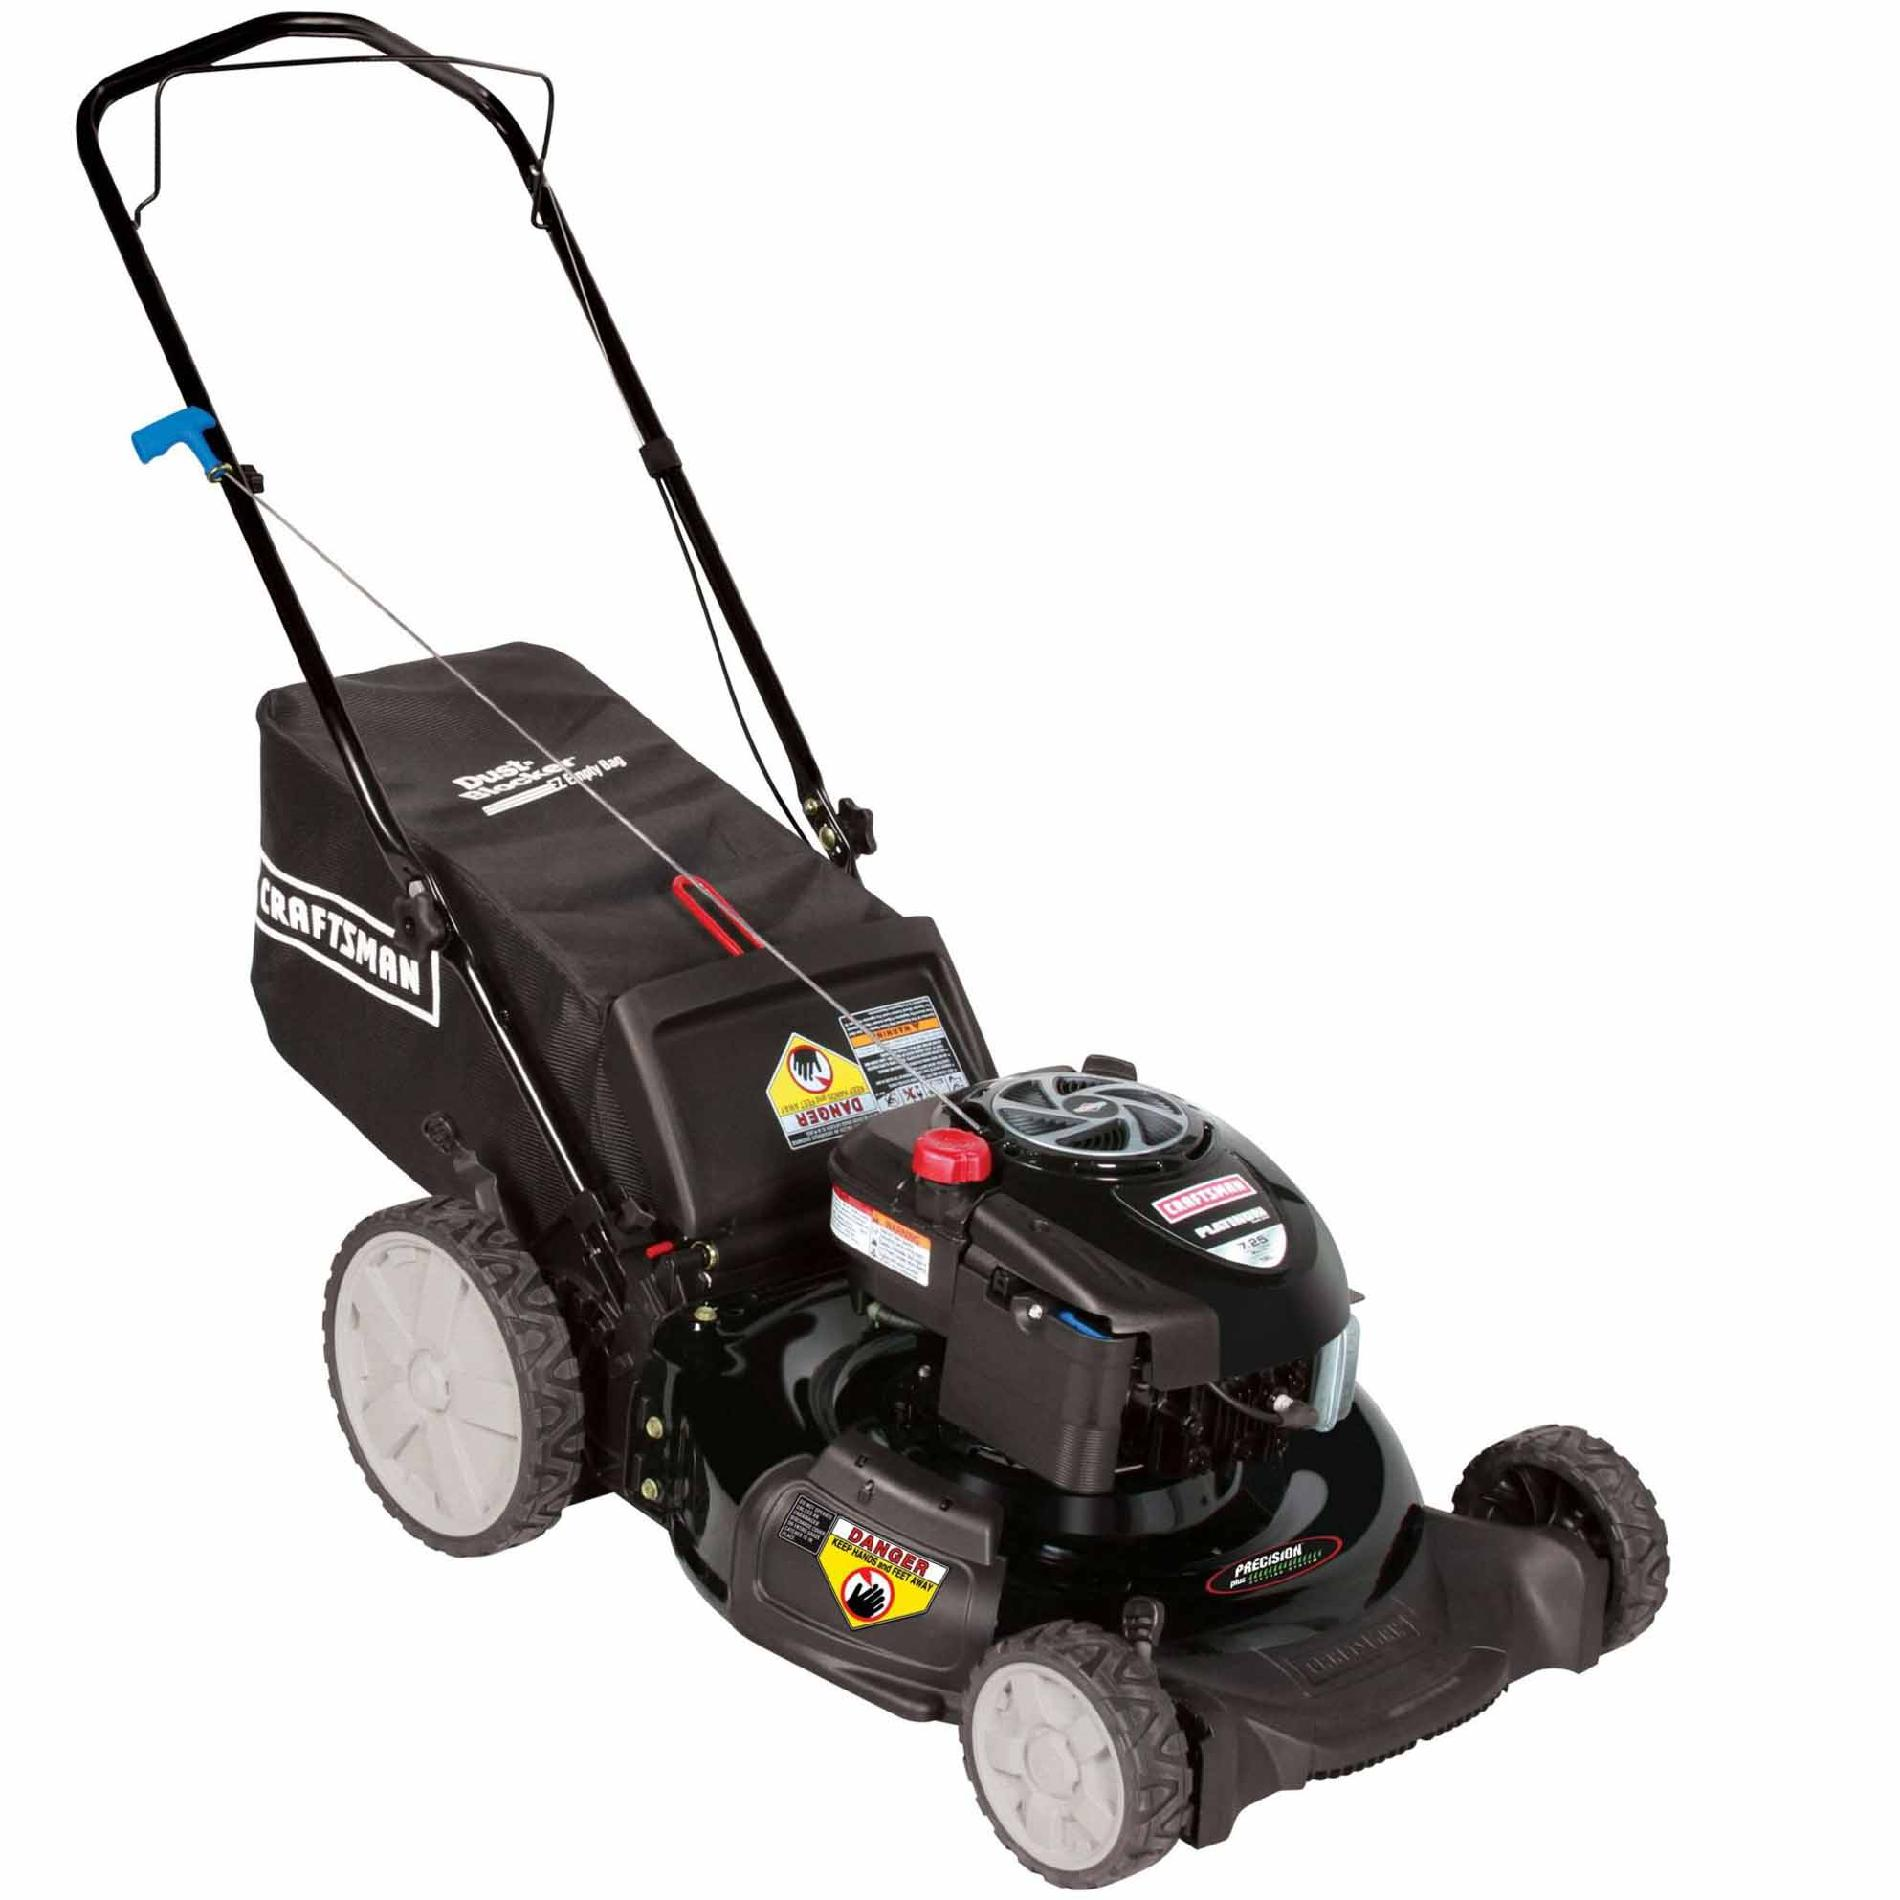 Craftsman 190cc* Briggs & Stratton Engine, High Wheel Rear Bag Push Mower 50 States